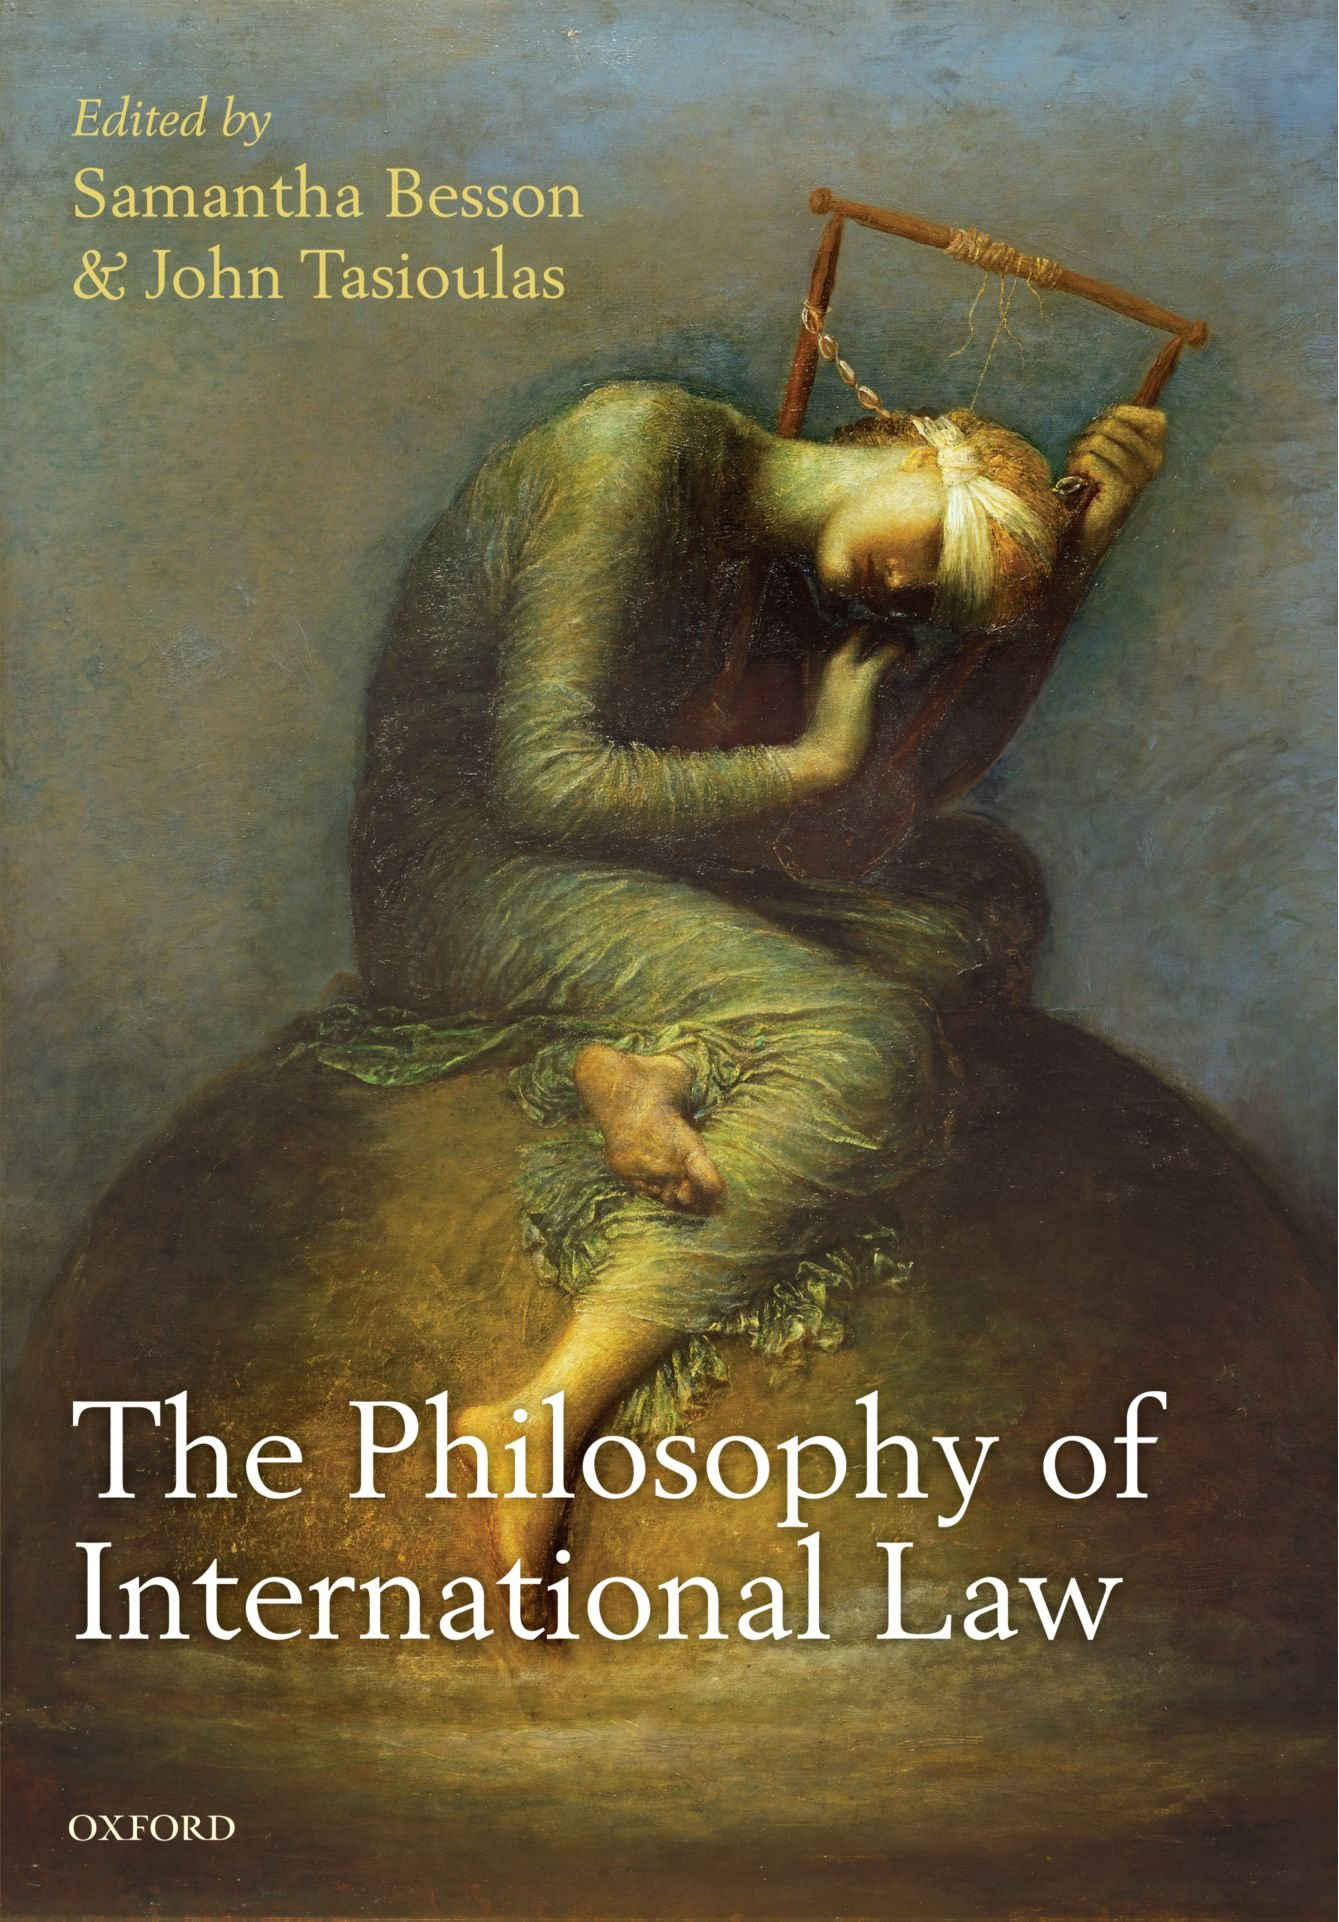 Image OfThe Philosophy Of International Law